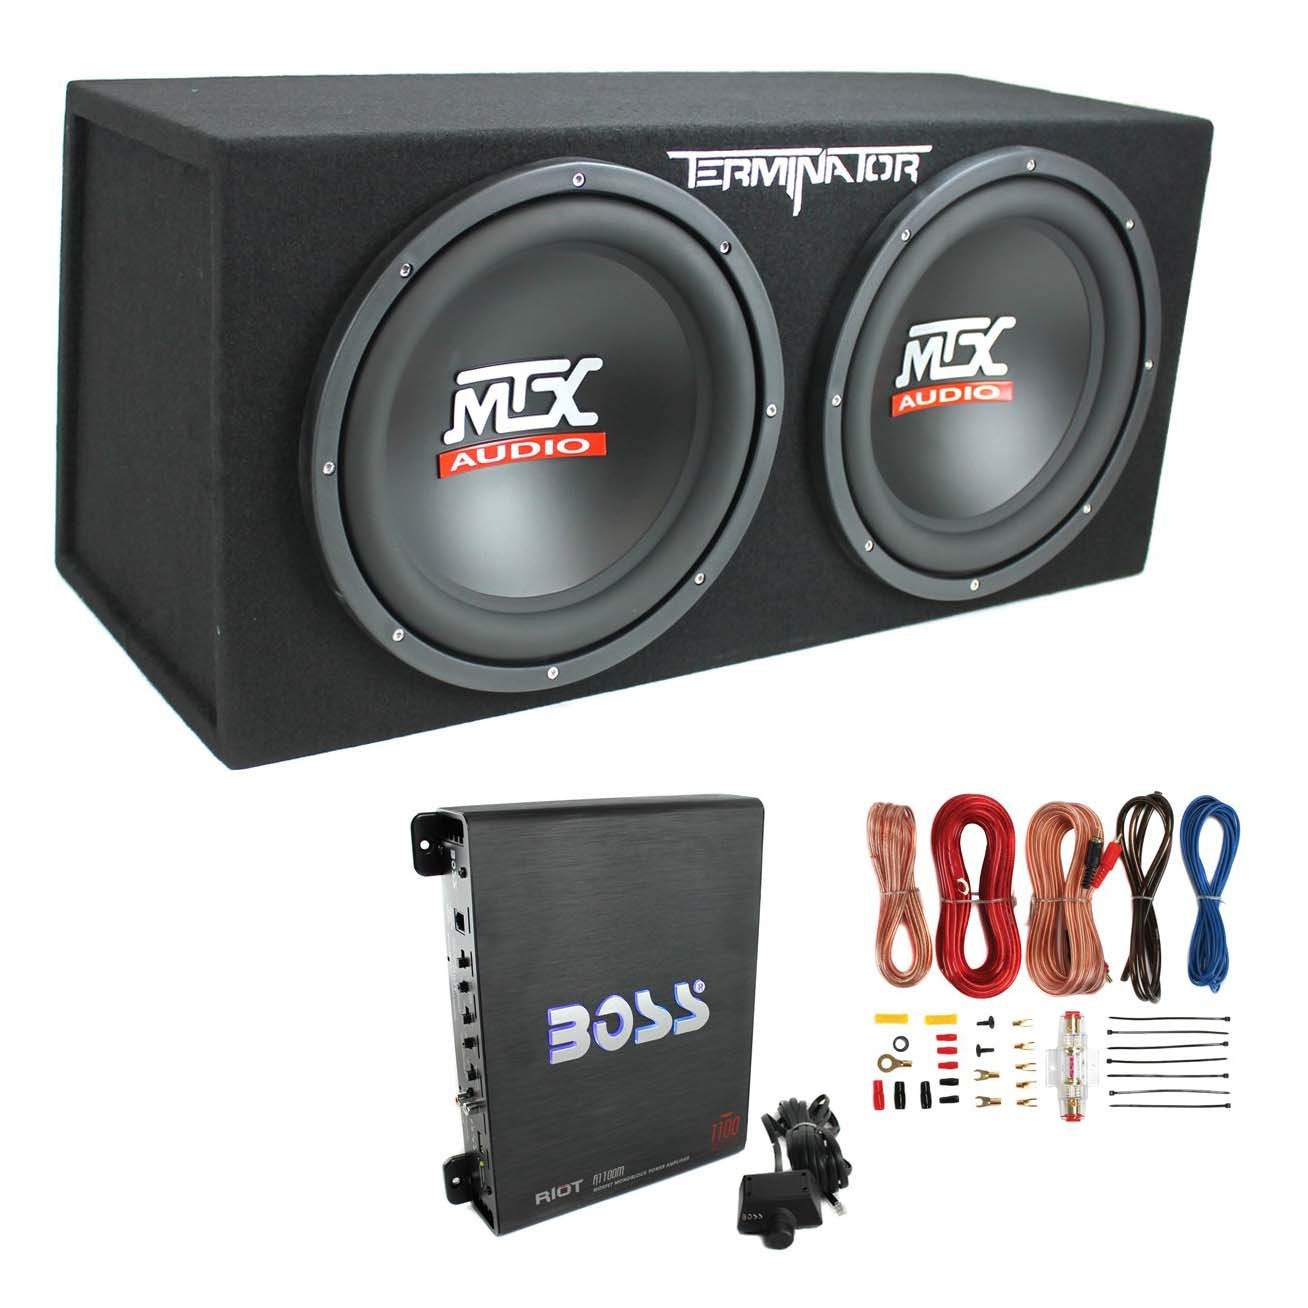 Mtx Tne212d 12 Inch 1200w Dual Loaded Subwoofer Box Amplifier Wiring Kit With Capacitor Car Electronics